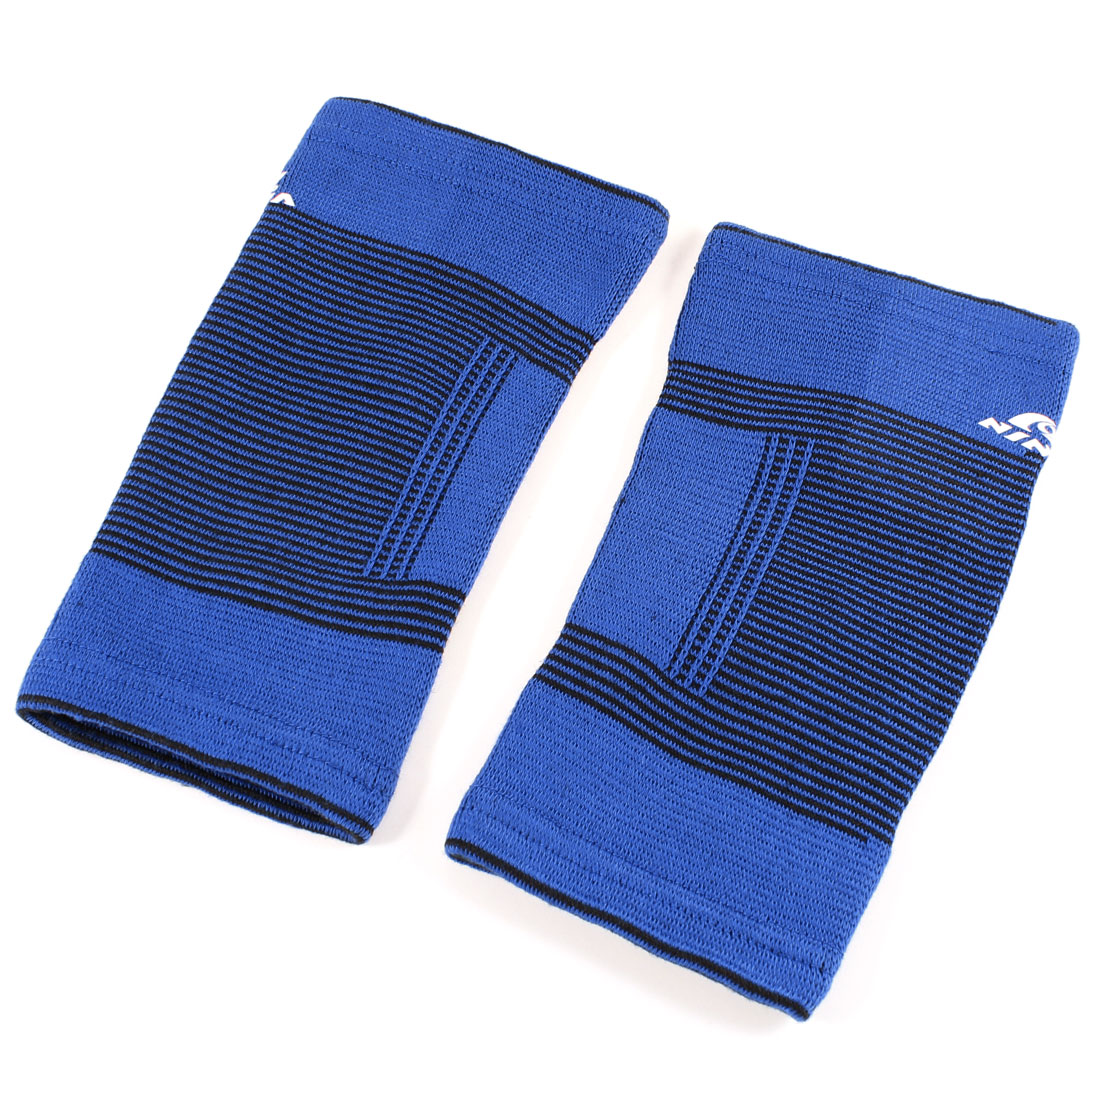 Sports Stripe Elastic Sleeve Brace Protector Guard Cover Elbow Support Blue Pair